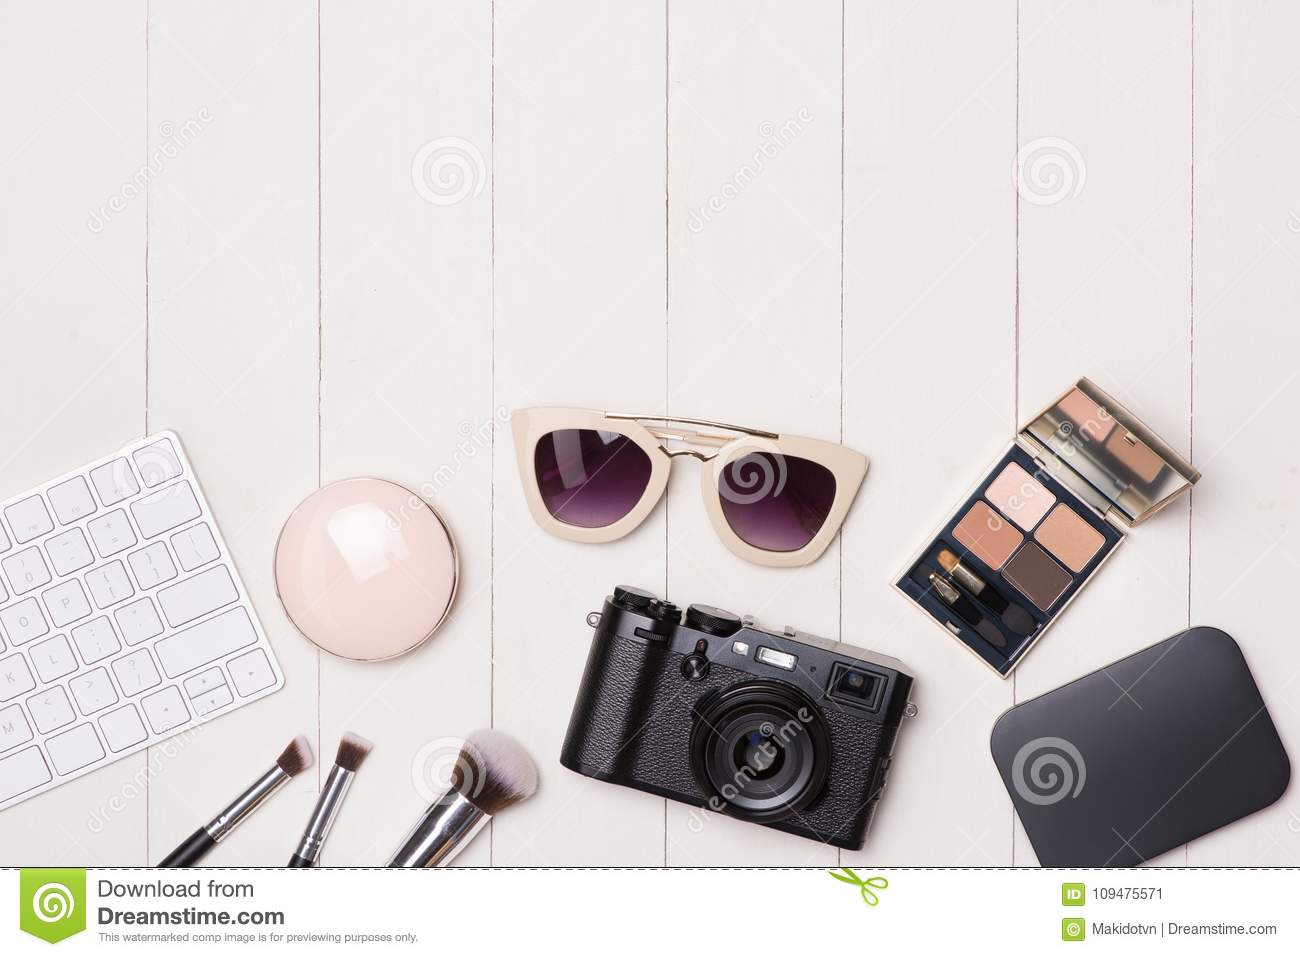 0d30c40292d Women Cosmetics And Fashion Items On Table With Camera And Passport ...